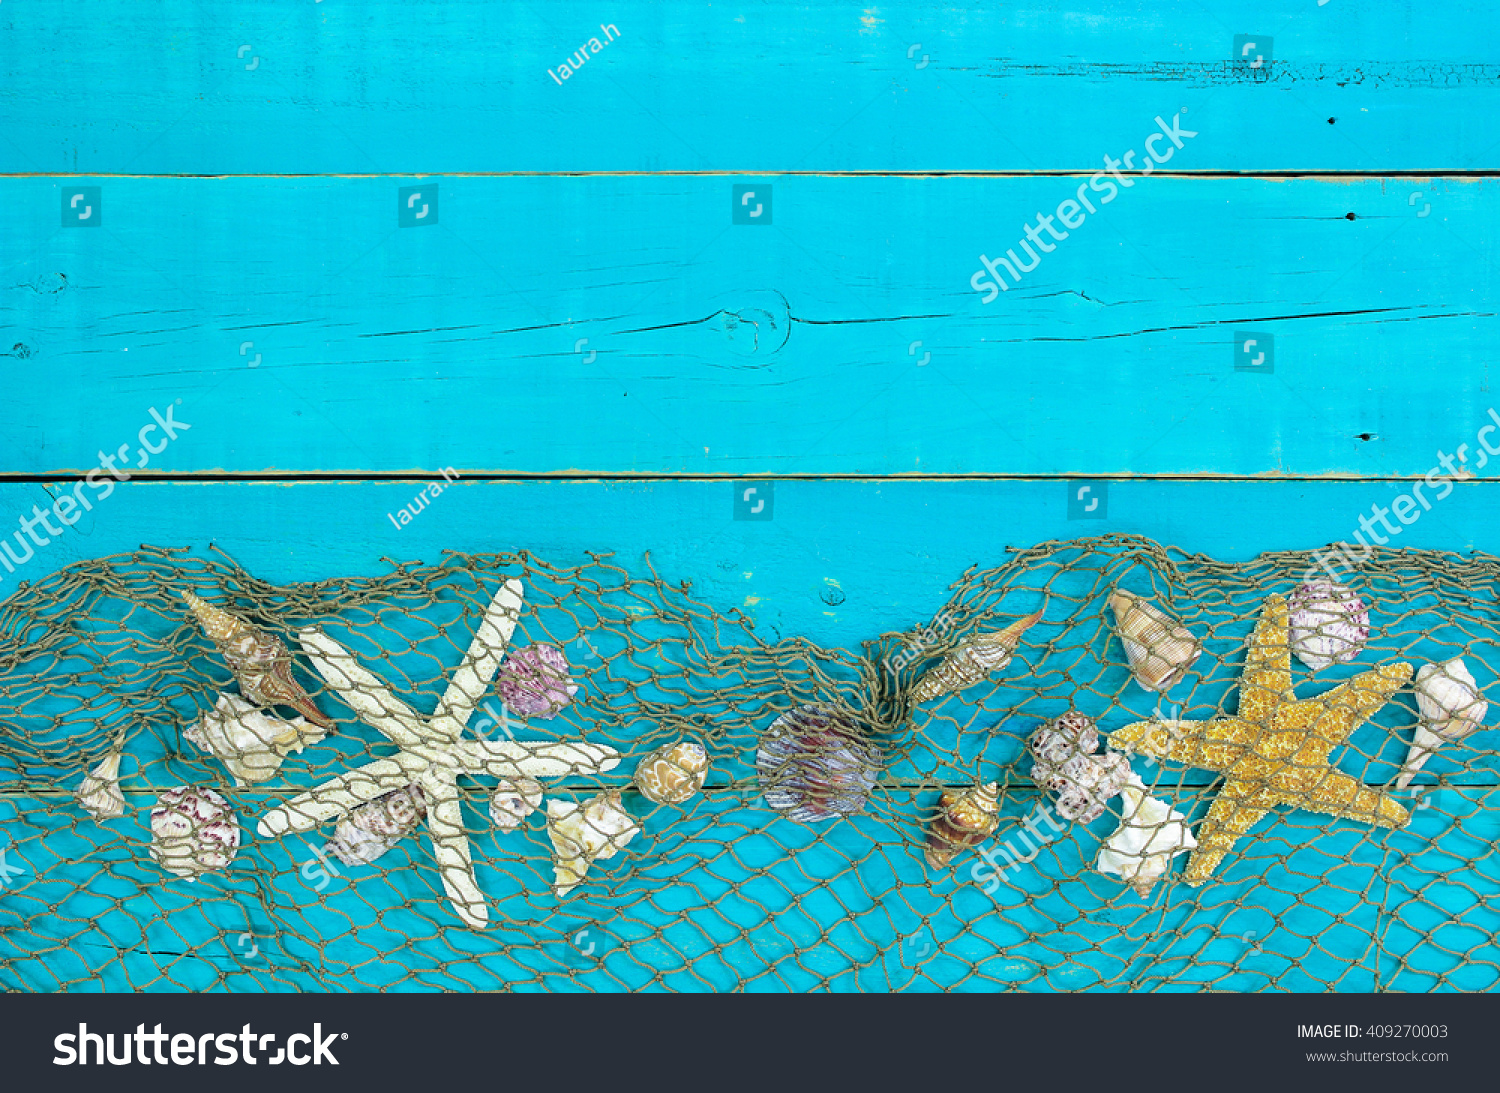 Seashells Starfish And Fish Net Border On Antique Rustic Teal Blue Wood Background Blank Beach Sign With Painted Wooden Copy Space Stock Photo